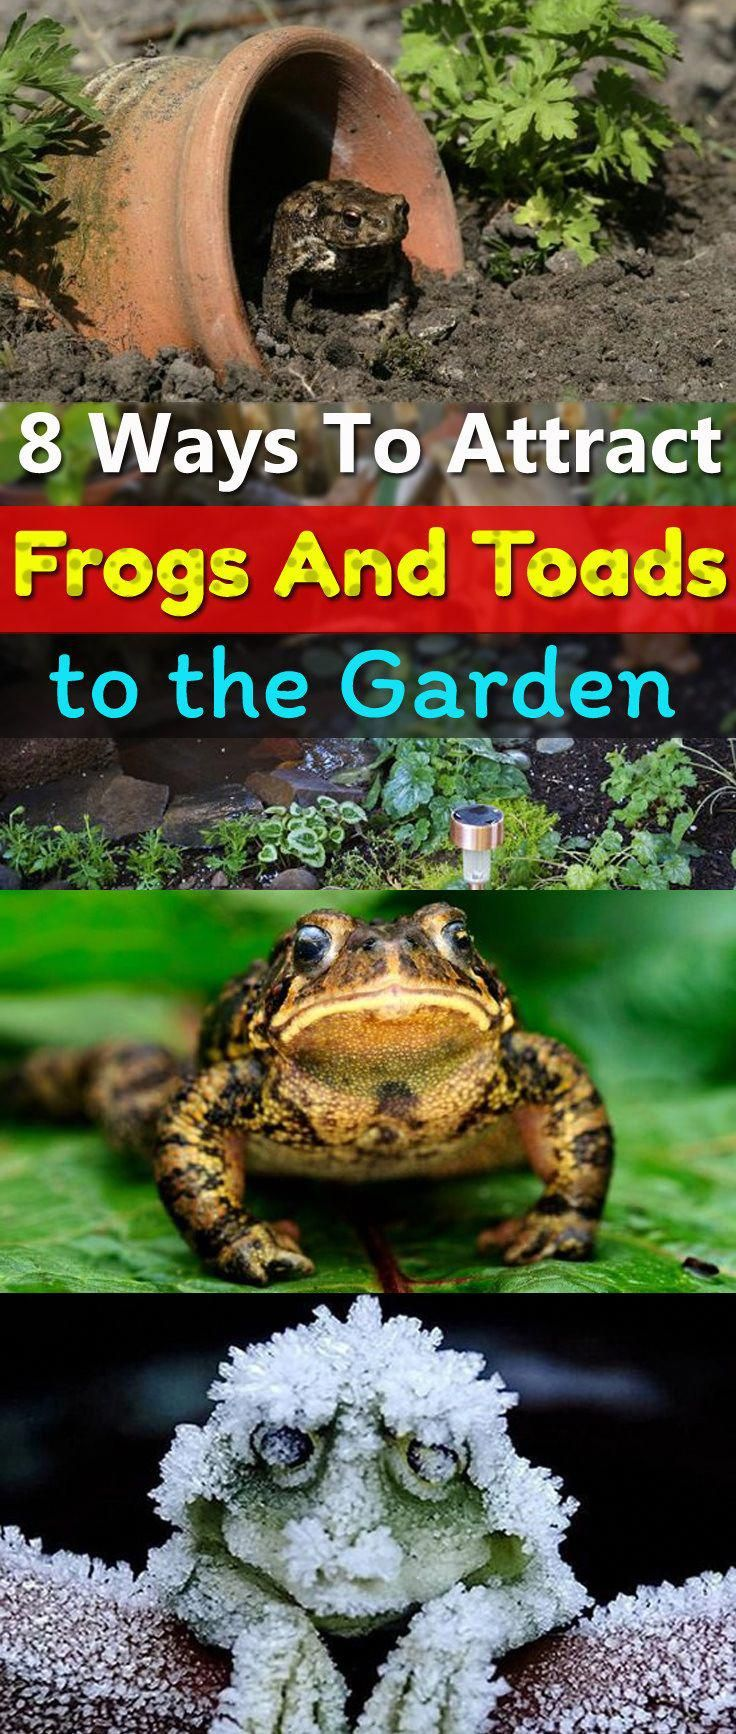 Attract toads and frogs to your garden to keep the garden